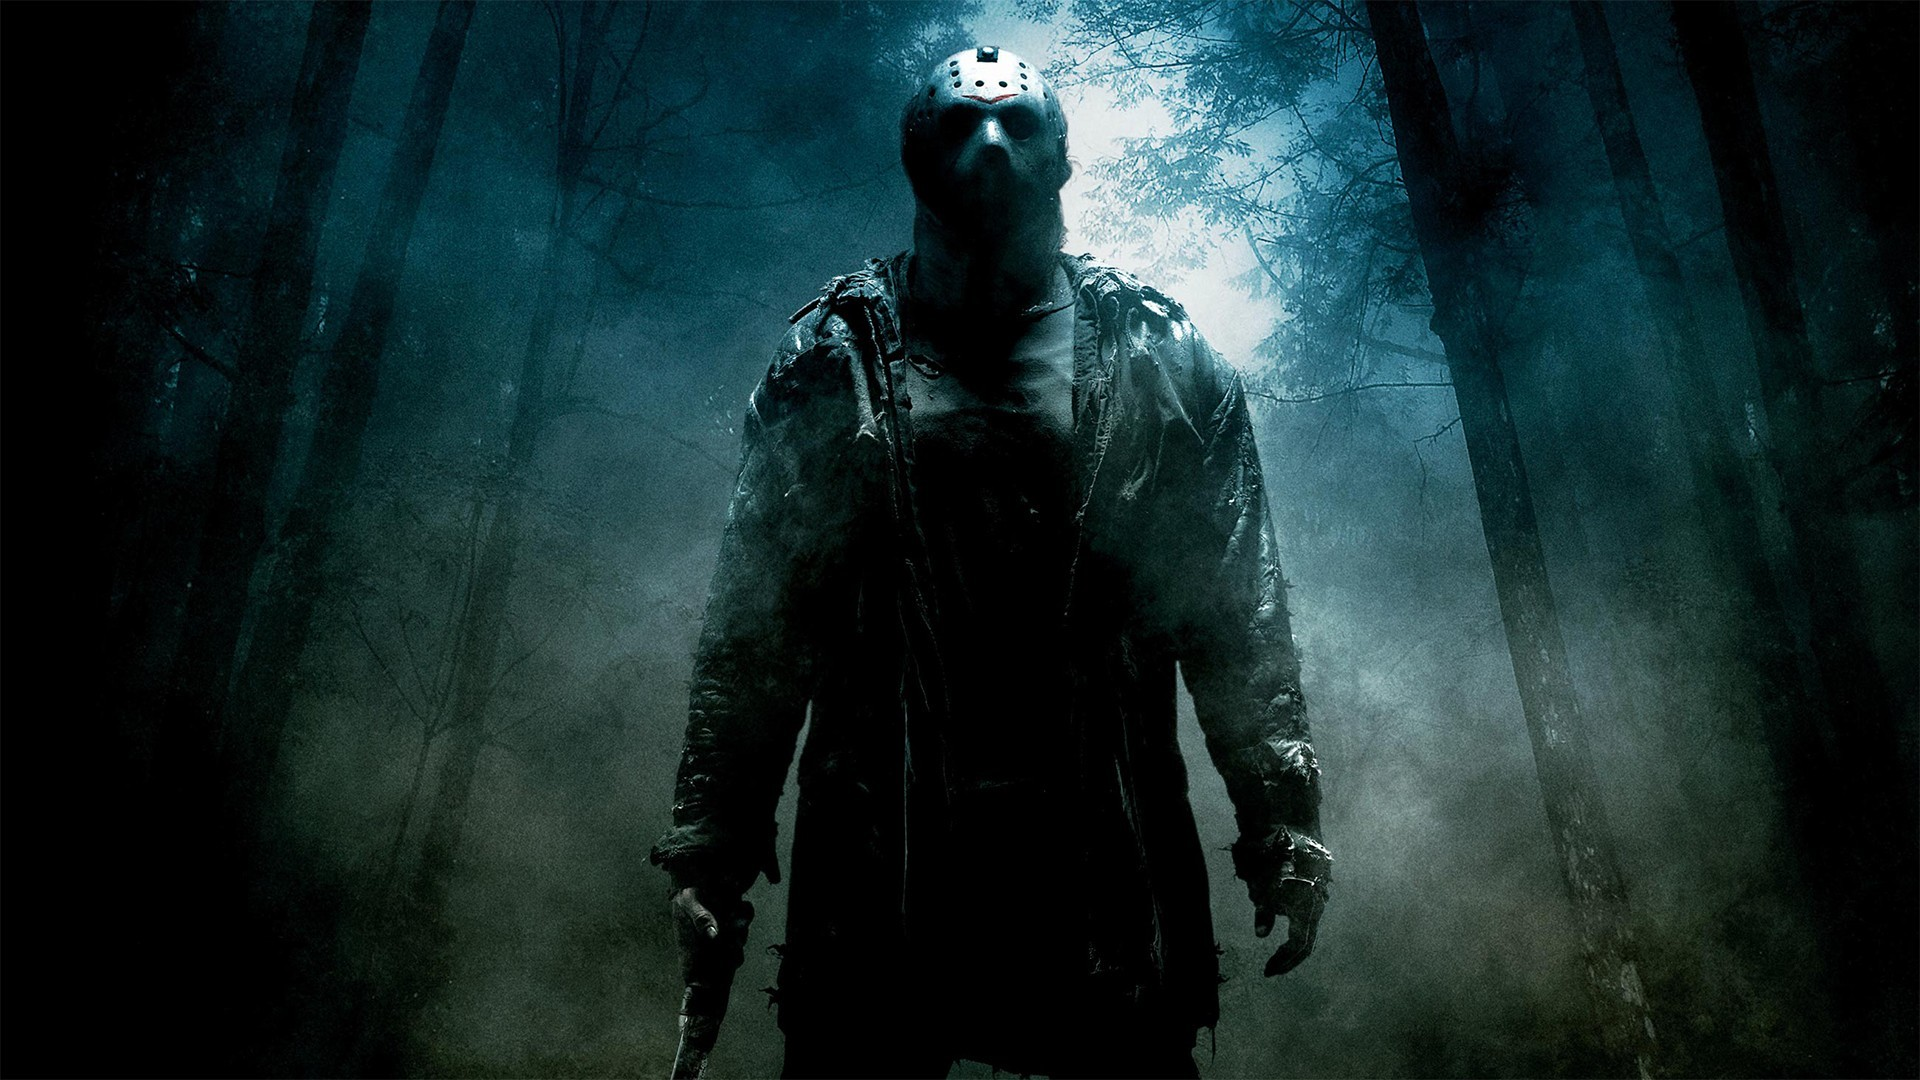 Horror Movie Wallpapers Wallpapertag: Horror Movie Desktop Wallpaper (51+ Images